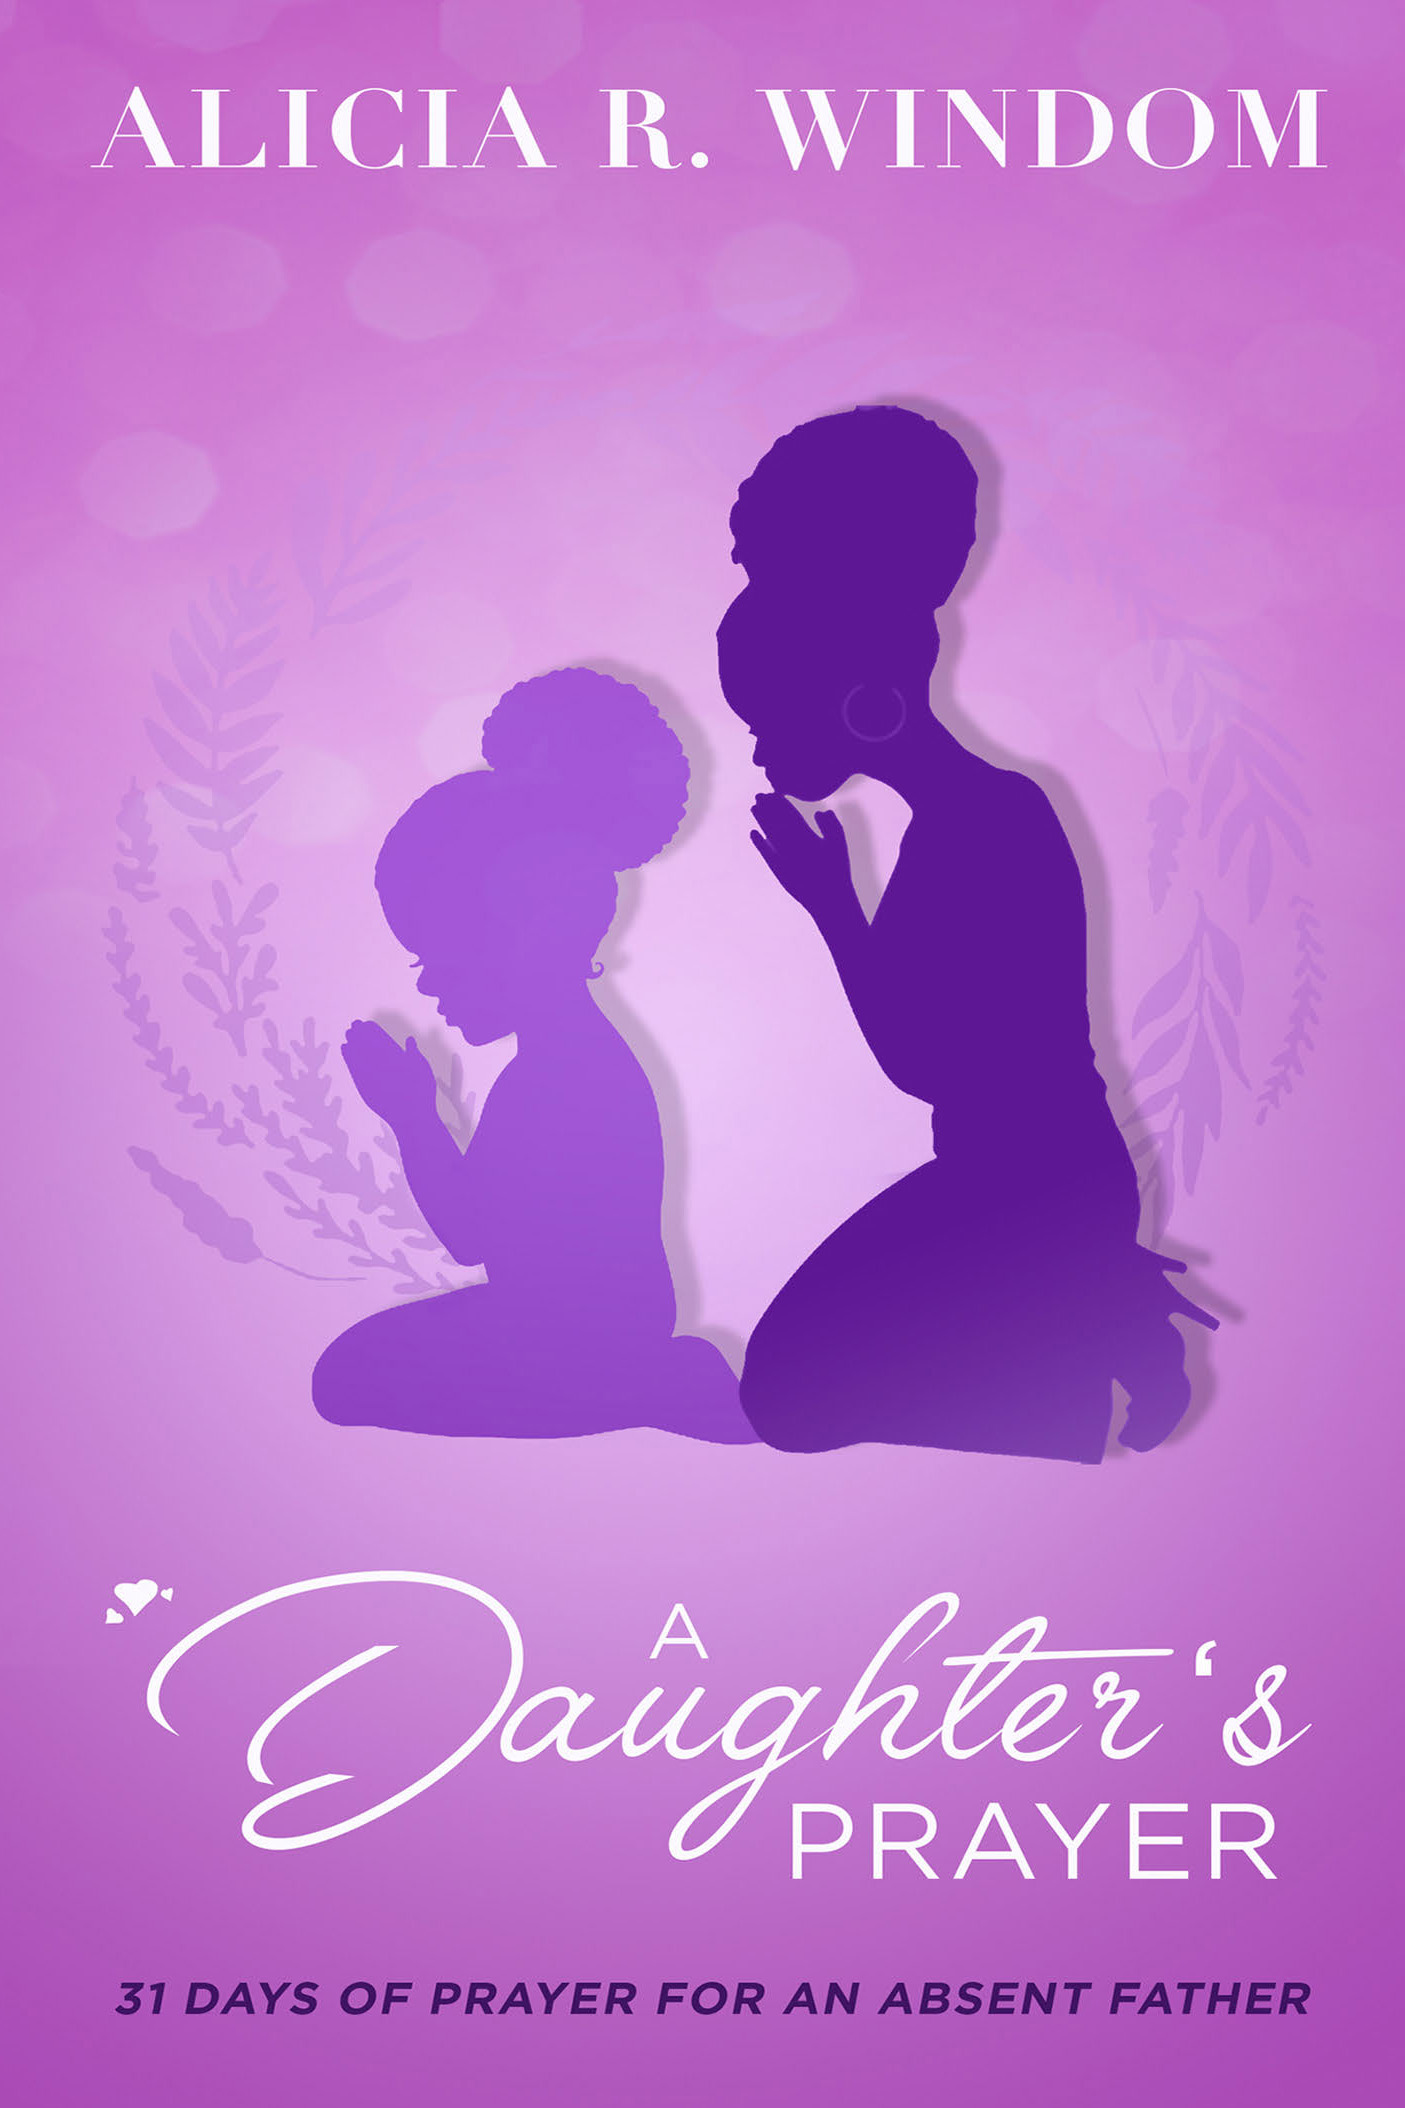 A Daughter's Prayer - 31 Days of Prayer for an Absent Father, an Ebook by  Alicia Windom